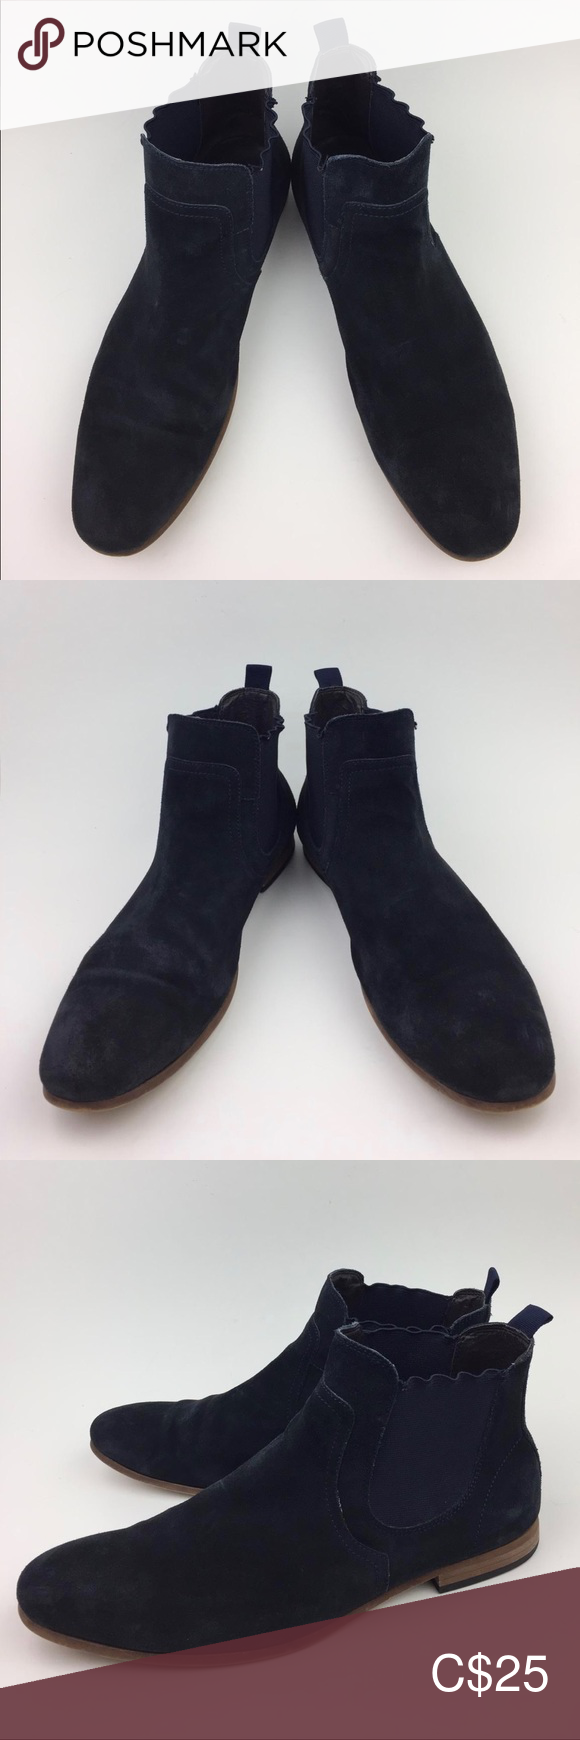 The Rail Brysen Chelsea Boot Sz 10 Chelsea Boots Boots Chelsea